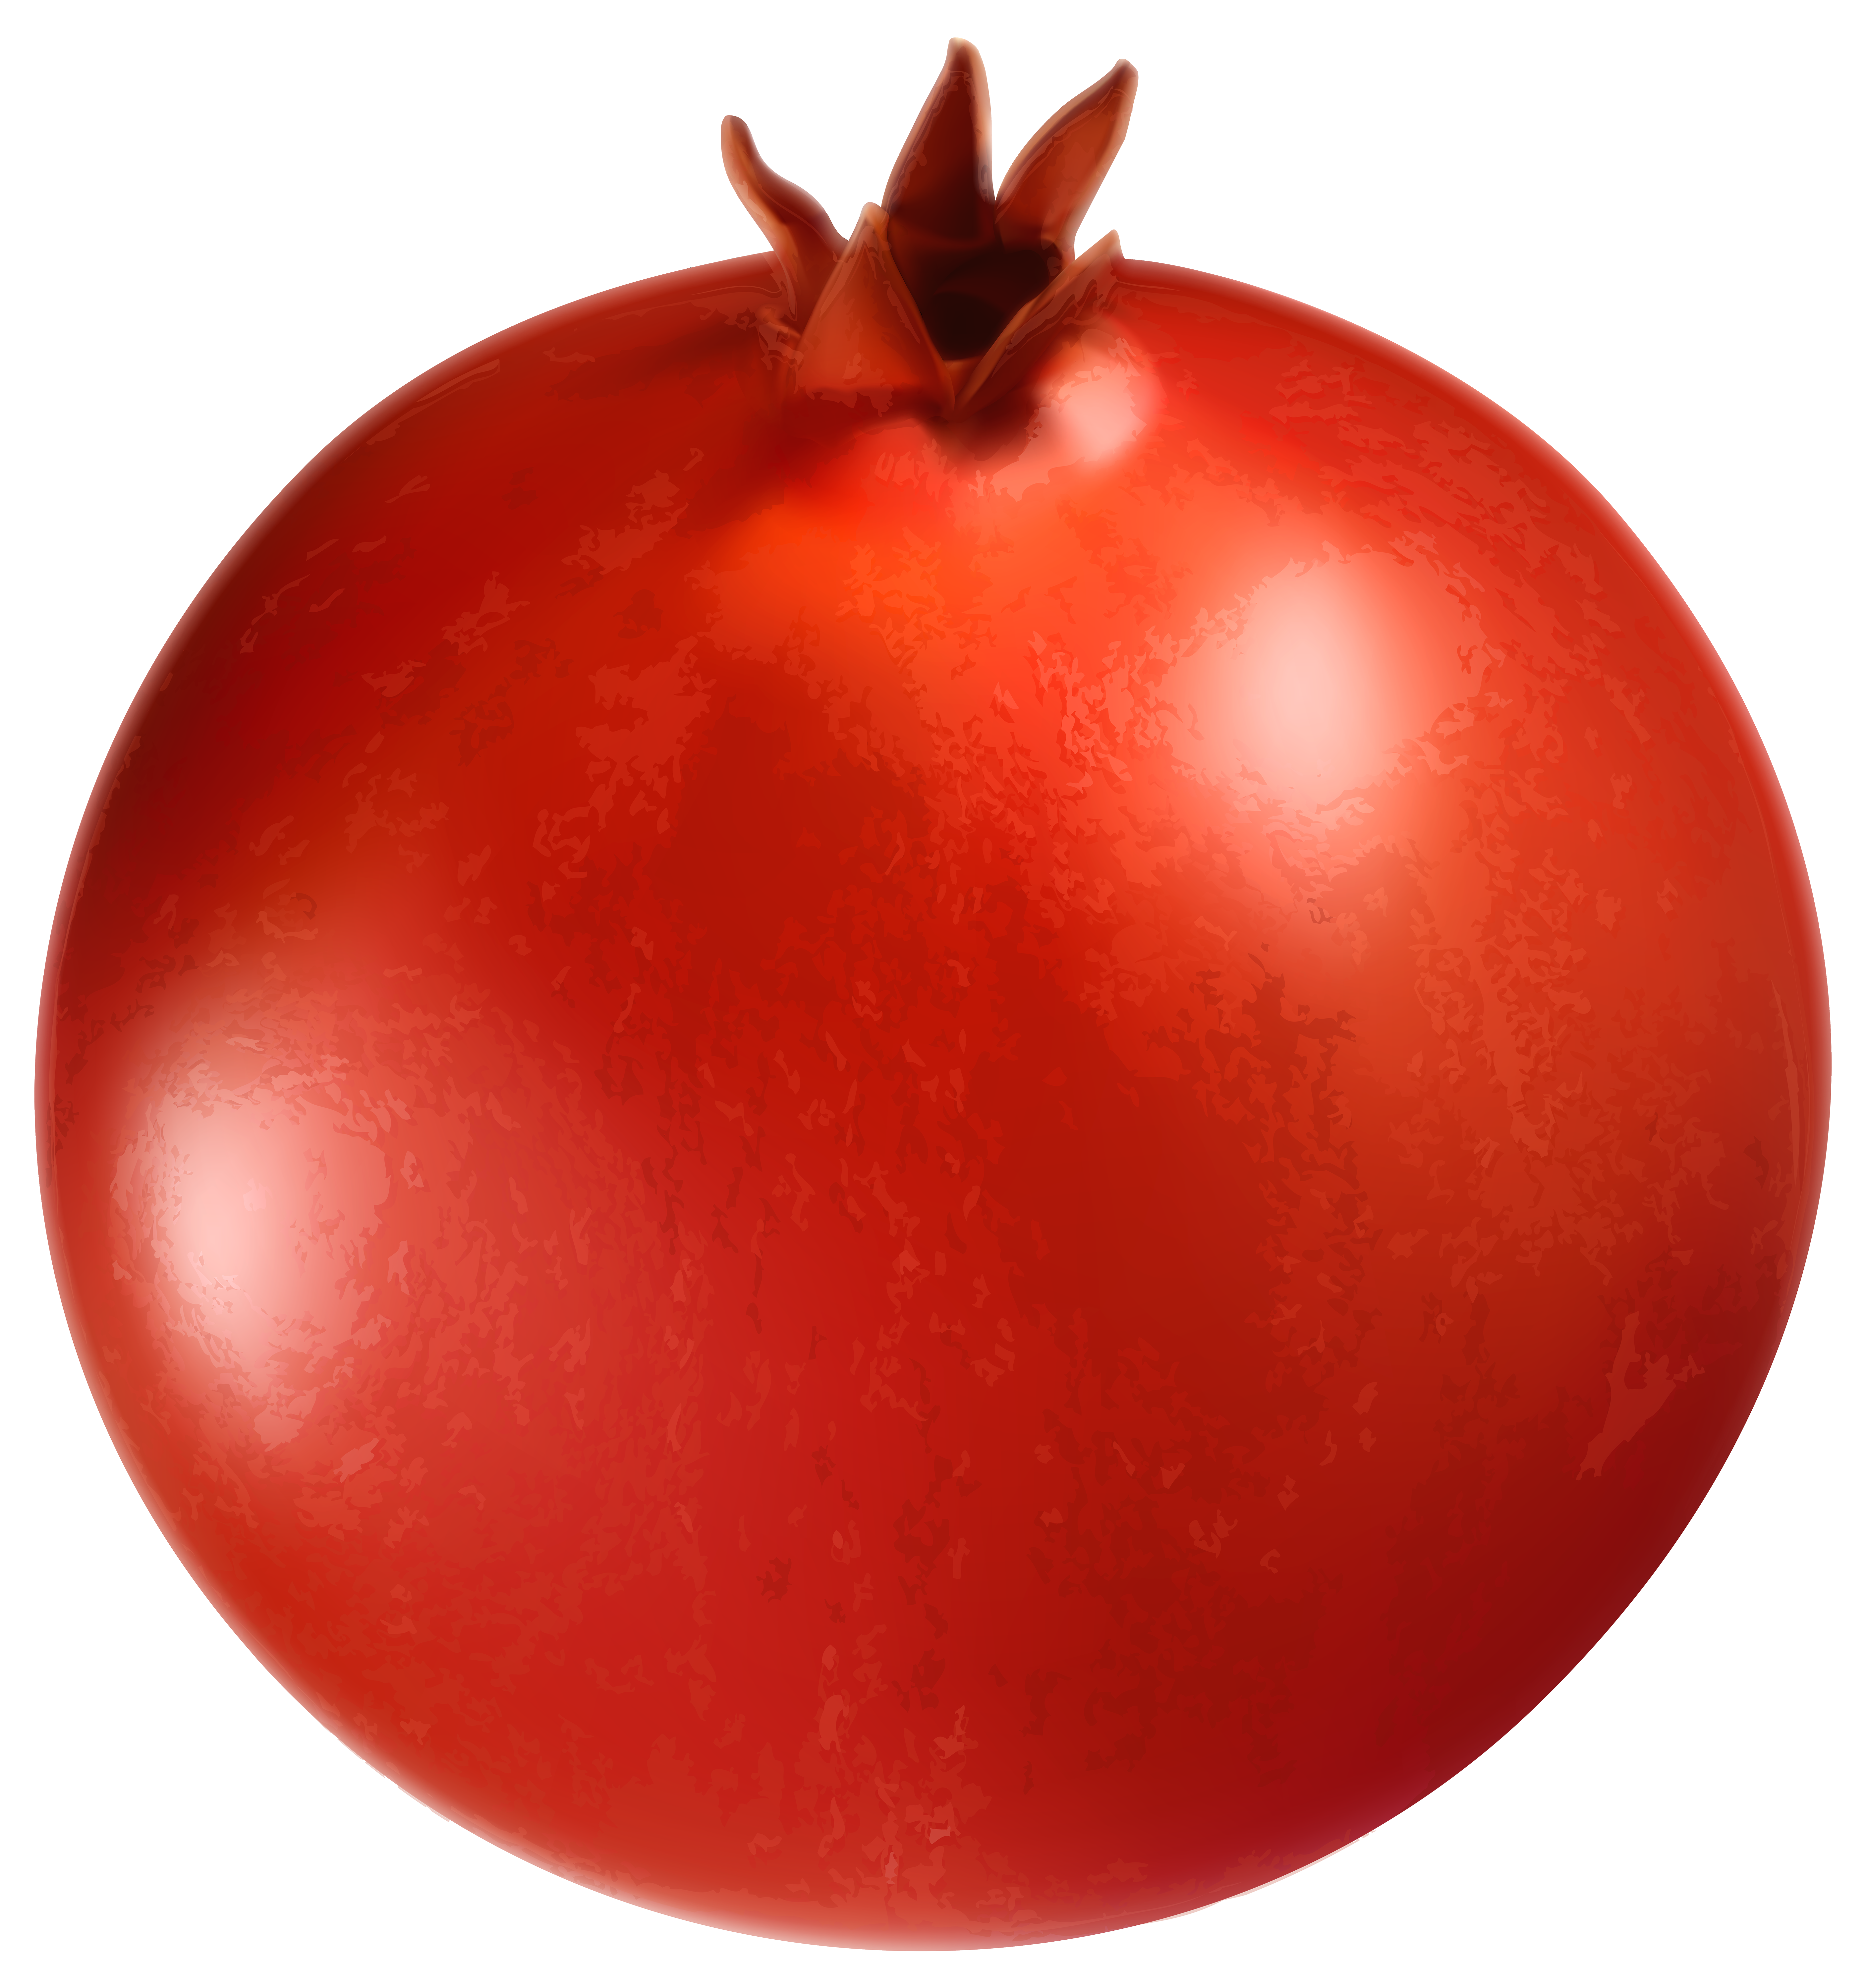 Pomegranate clipart kind fruit. Transparent png clip art